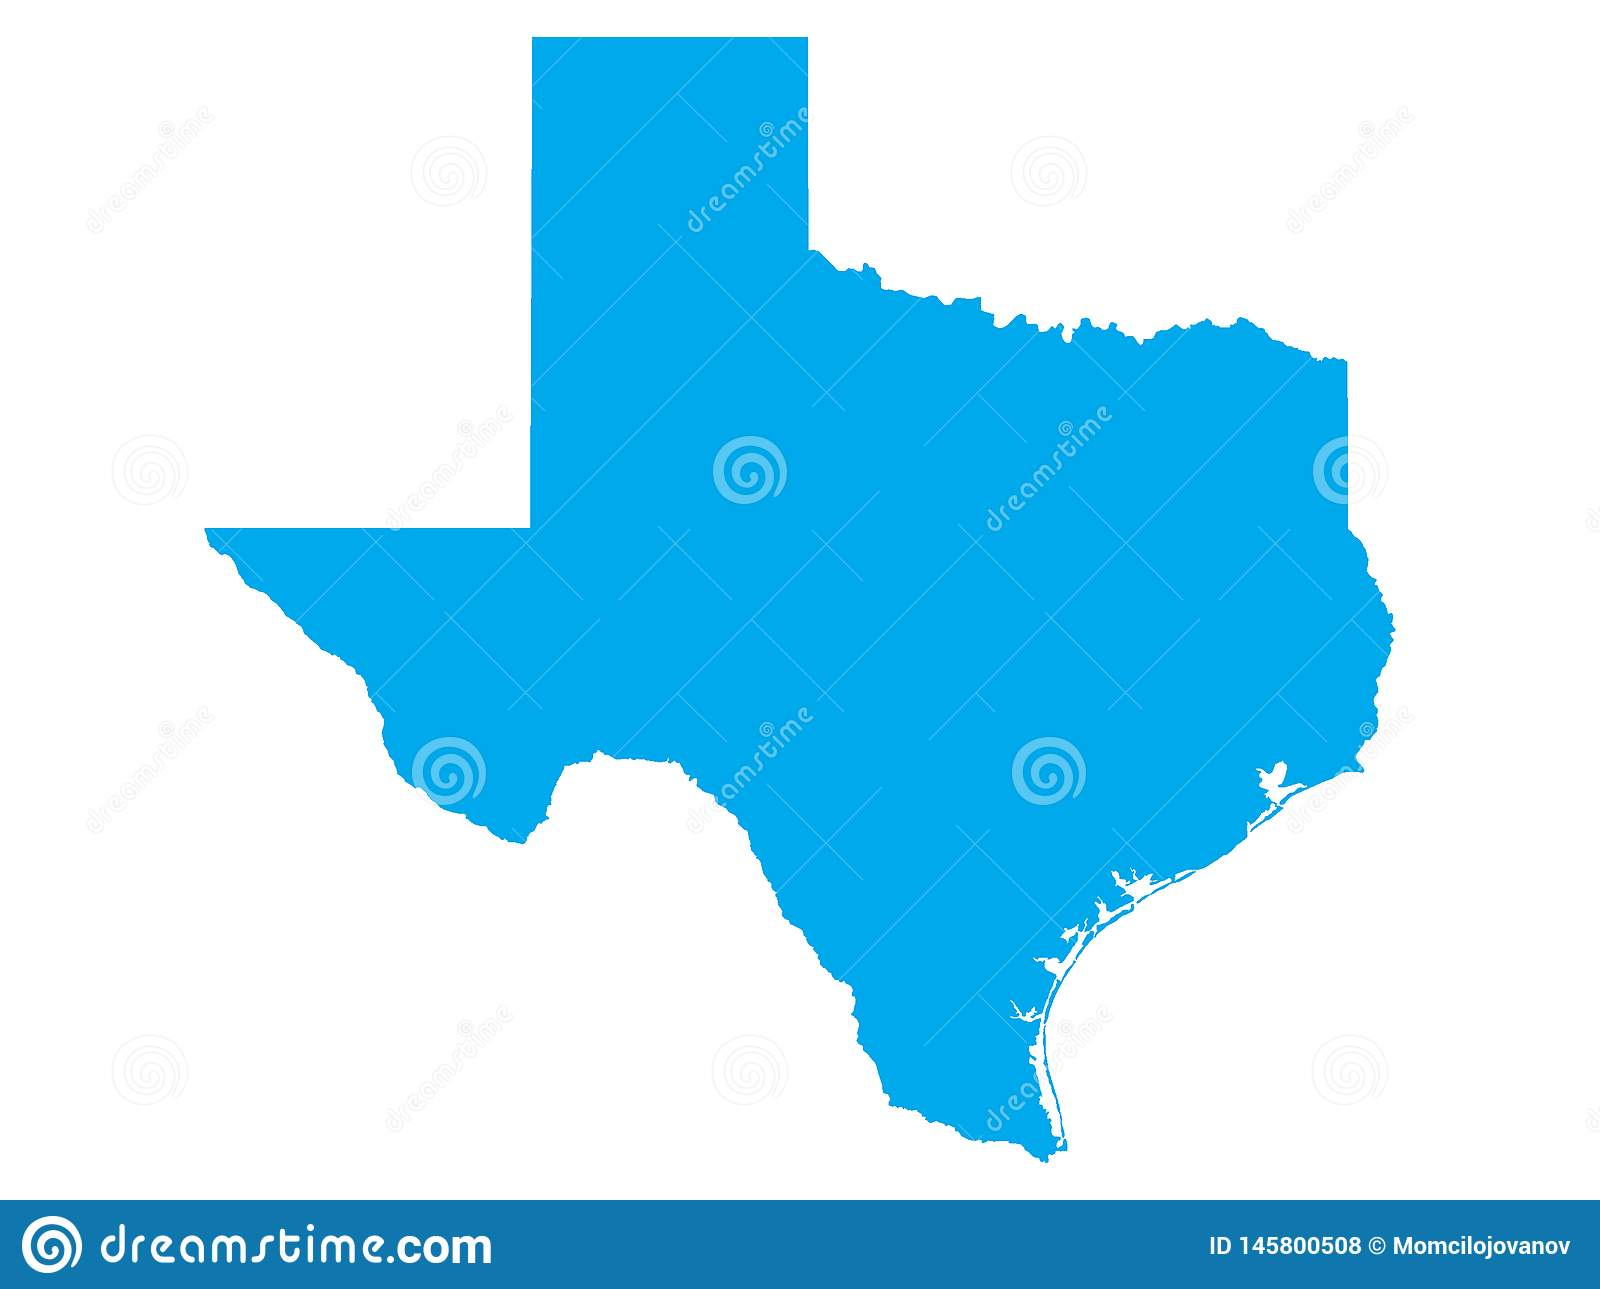 Blue Map Of US State Of Texas Stock Vector - Illustration of ...